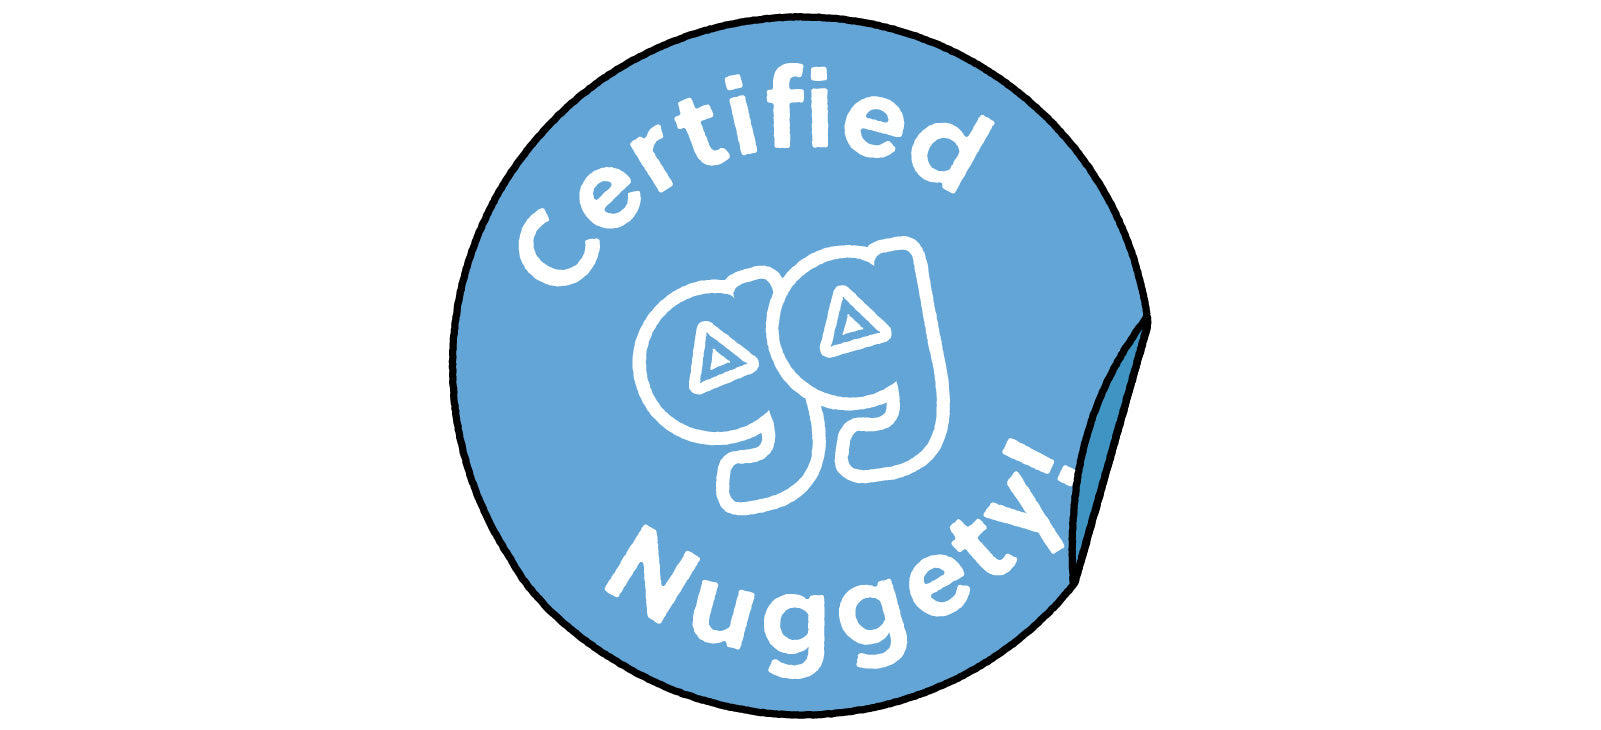 Blue illustrated circle sticker with words Certified Nuggety and Nugget gg logo